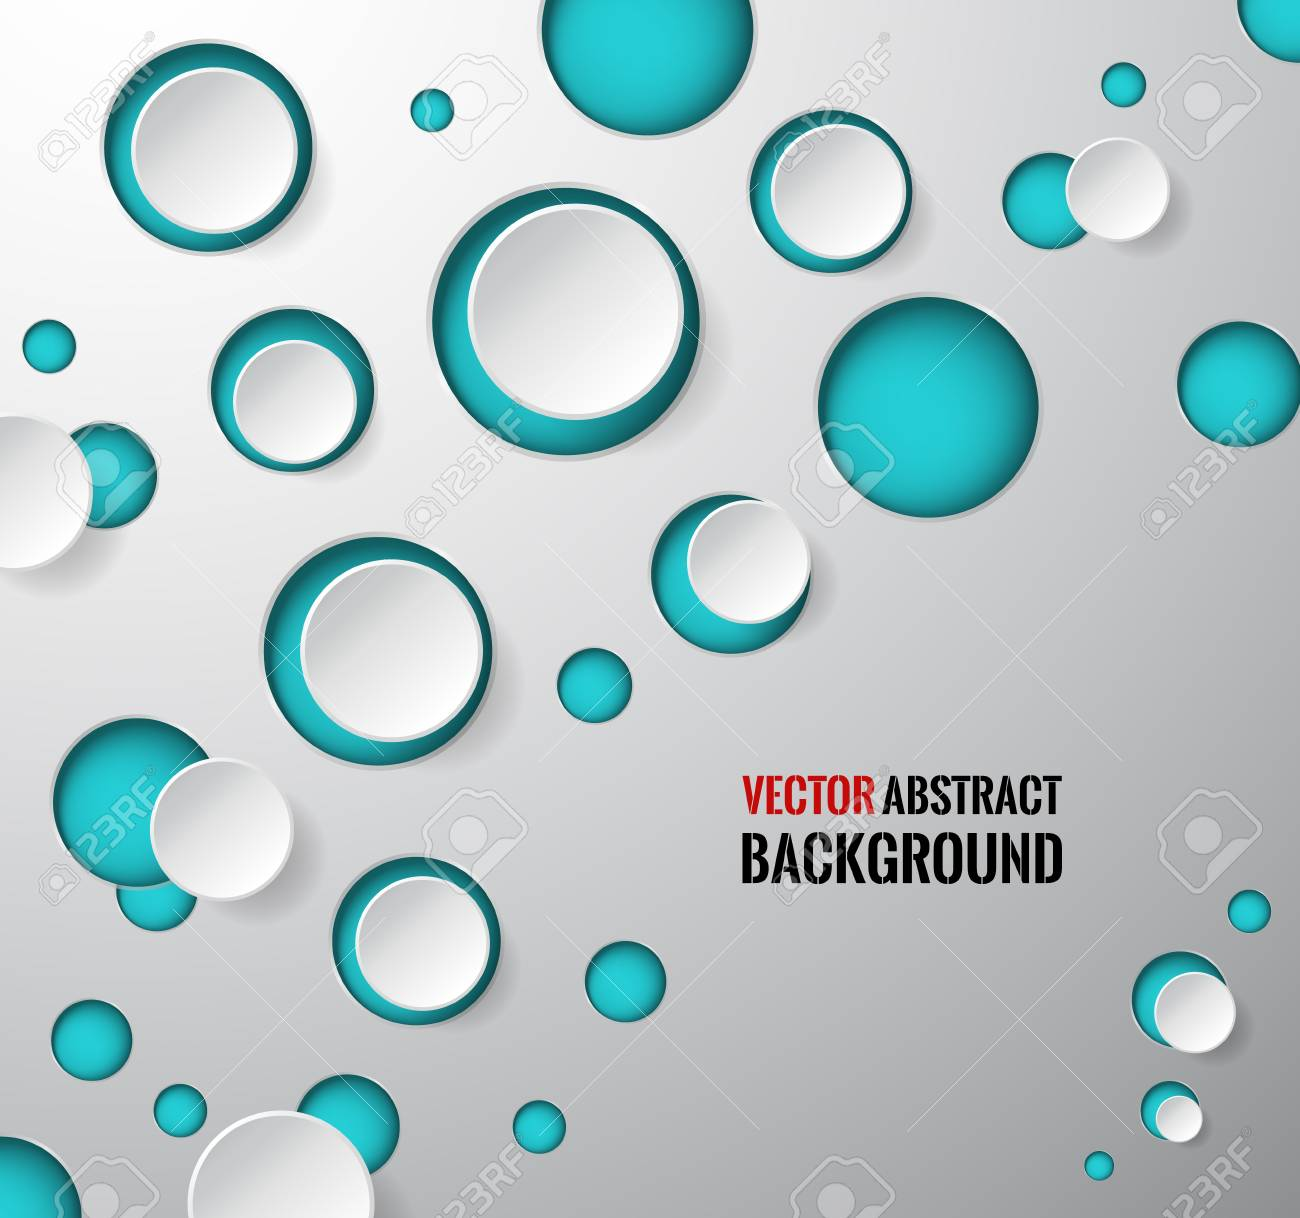 Vector Abstract Background Circle Round Colored Bubbles Wallpaper